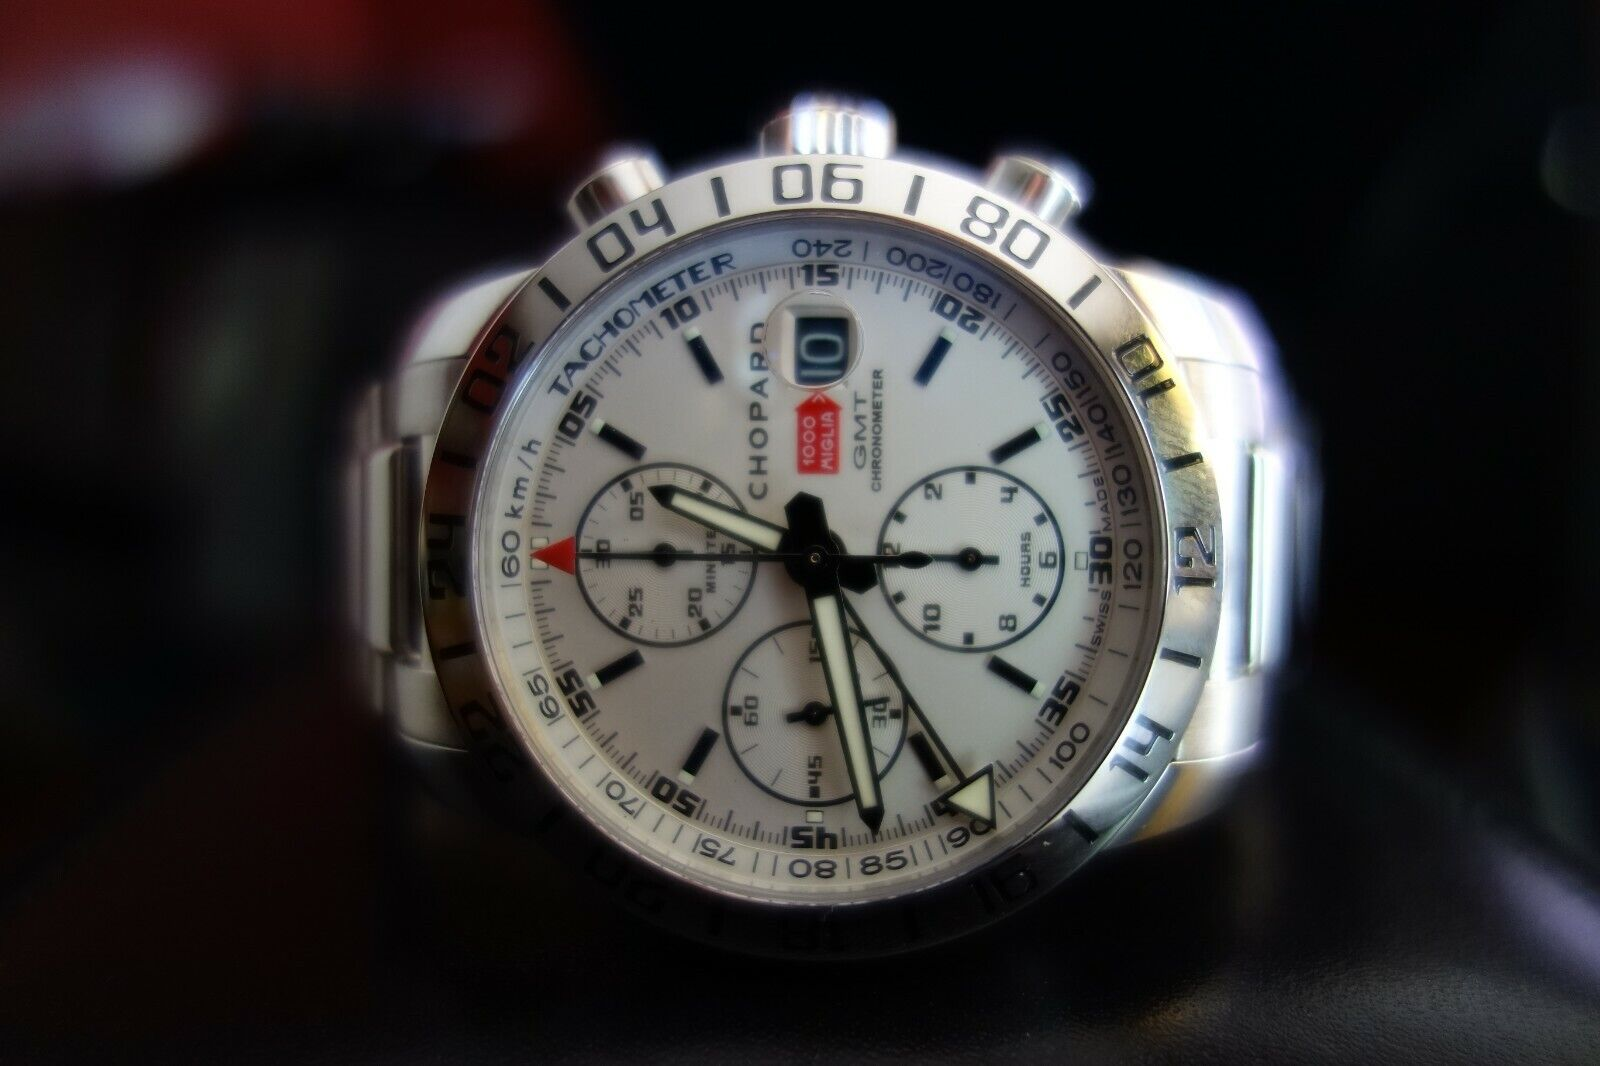 Chopard Mille Miglia GMT Chronograph 158992-3002 Wrist Watch for Men - watch picture 1